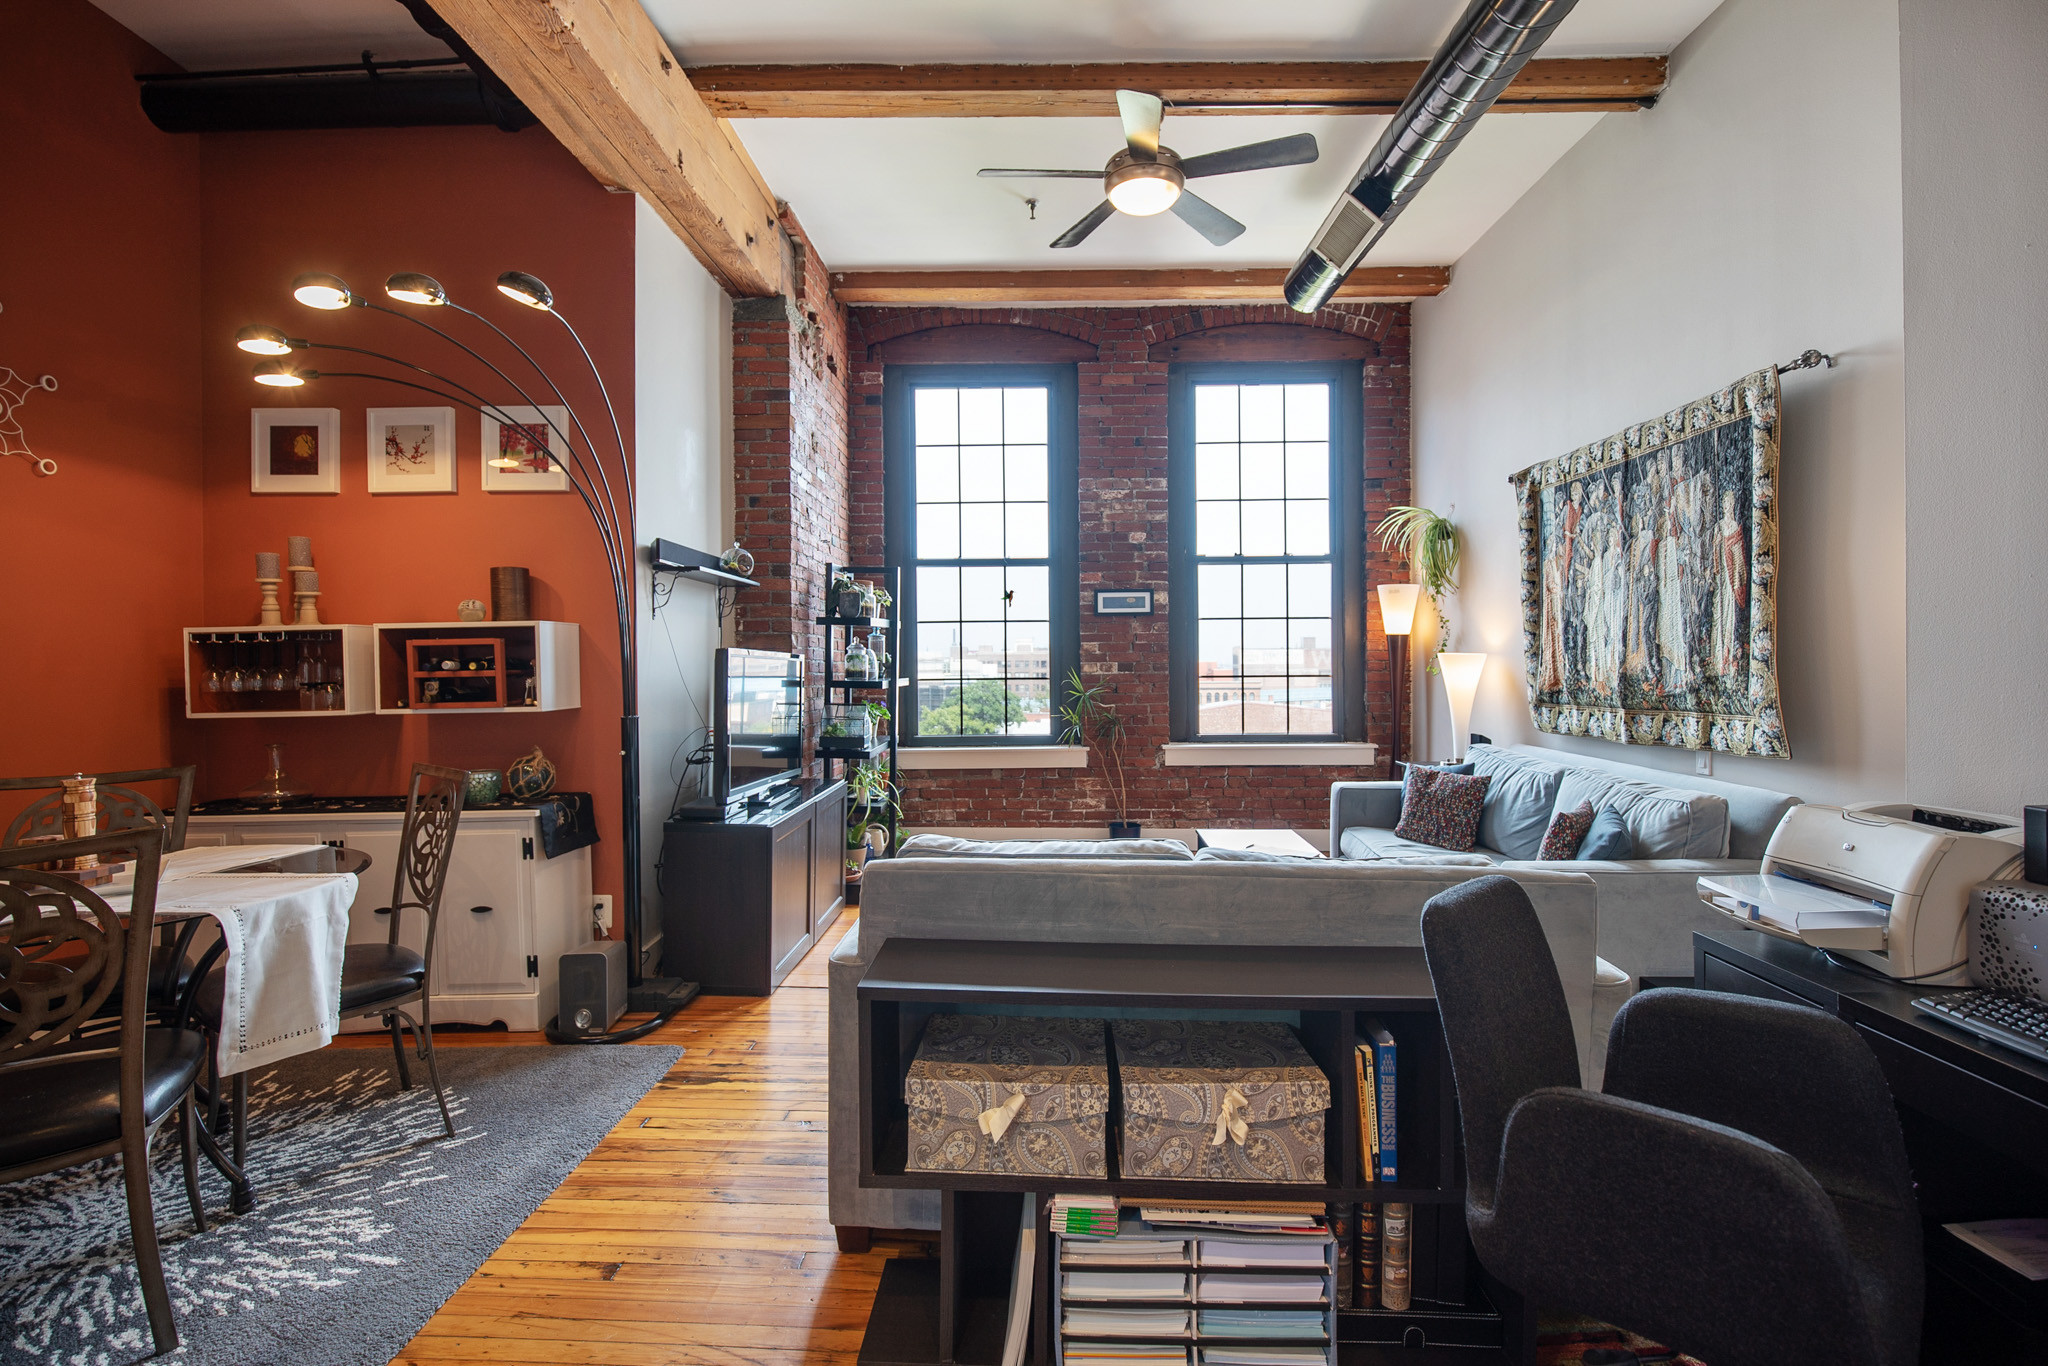 philadelphia hardwood floor store of philadelphia homes neighborhoods architecture and real estate within charming home in old city hoopskirt factory wants 295k